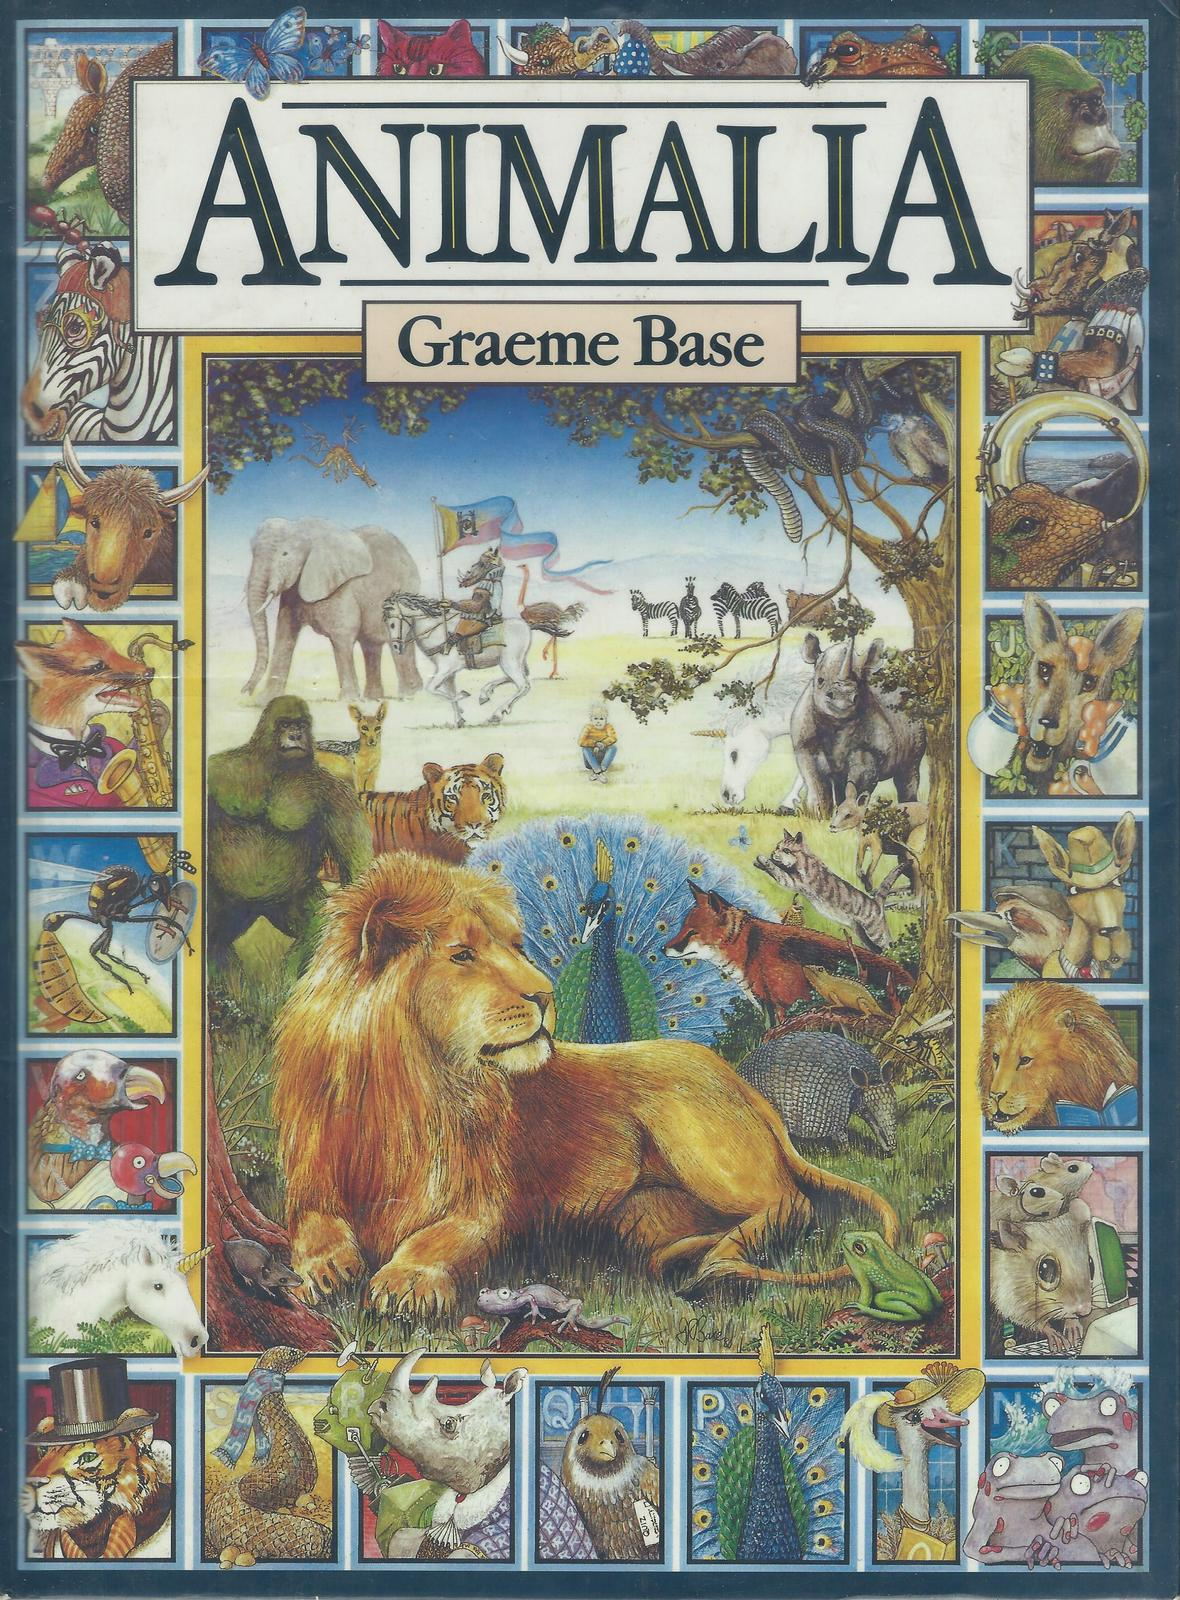 Animalia-Graeme Base-ALLITERATION PRACTICE!SUPER ILLUSTRATIONS